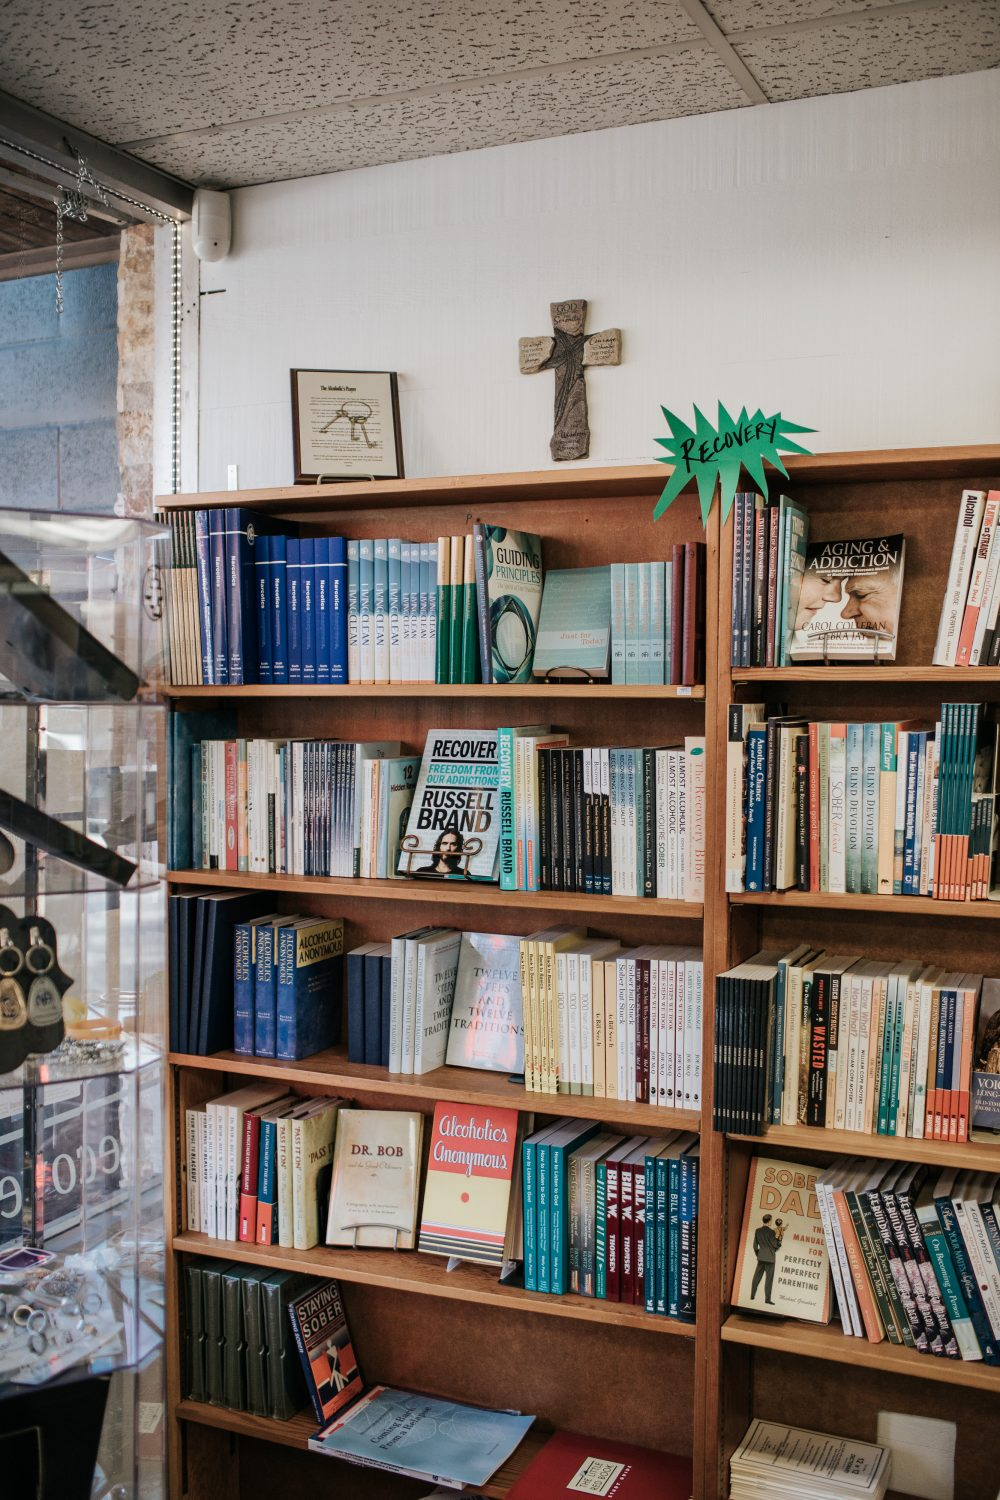 Visions Bookstore | 10 Locally Owned Things to Do in New West